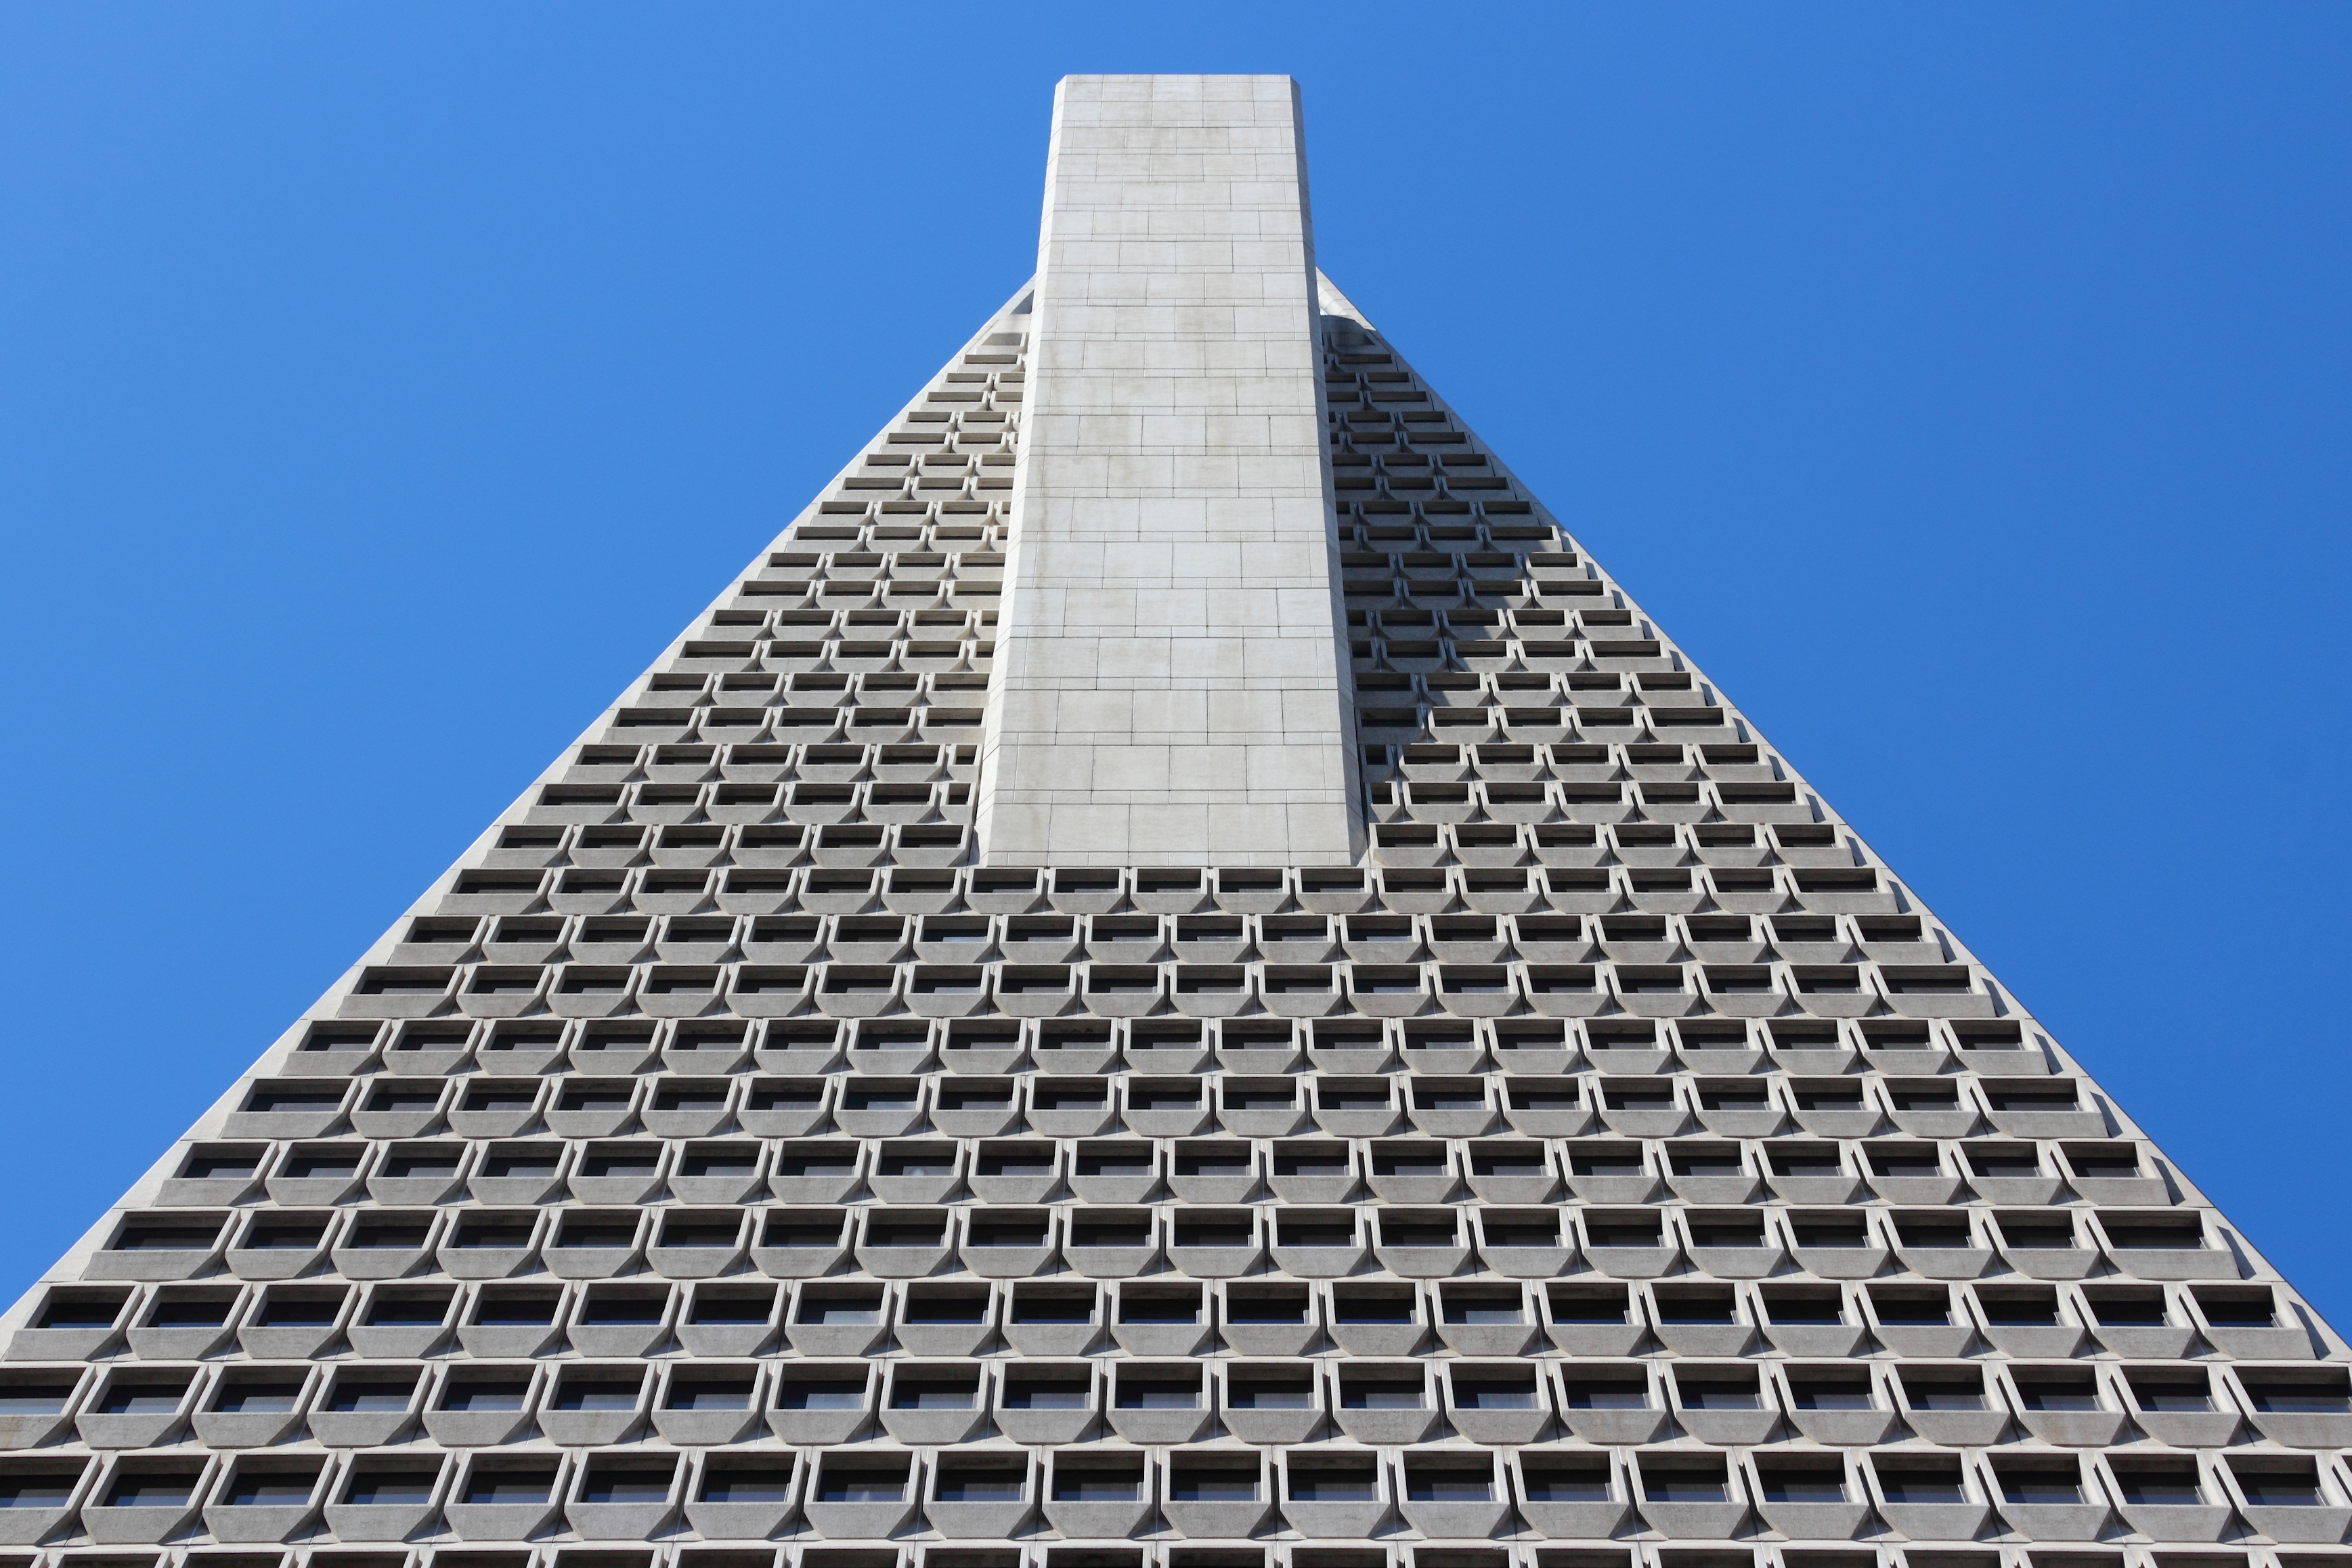 The exterior of the top of a skyscraper in San Francisco. The facade has a geometric pattern.